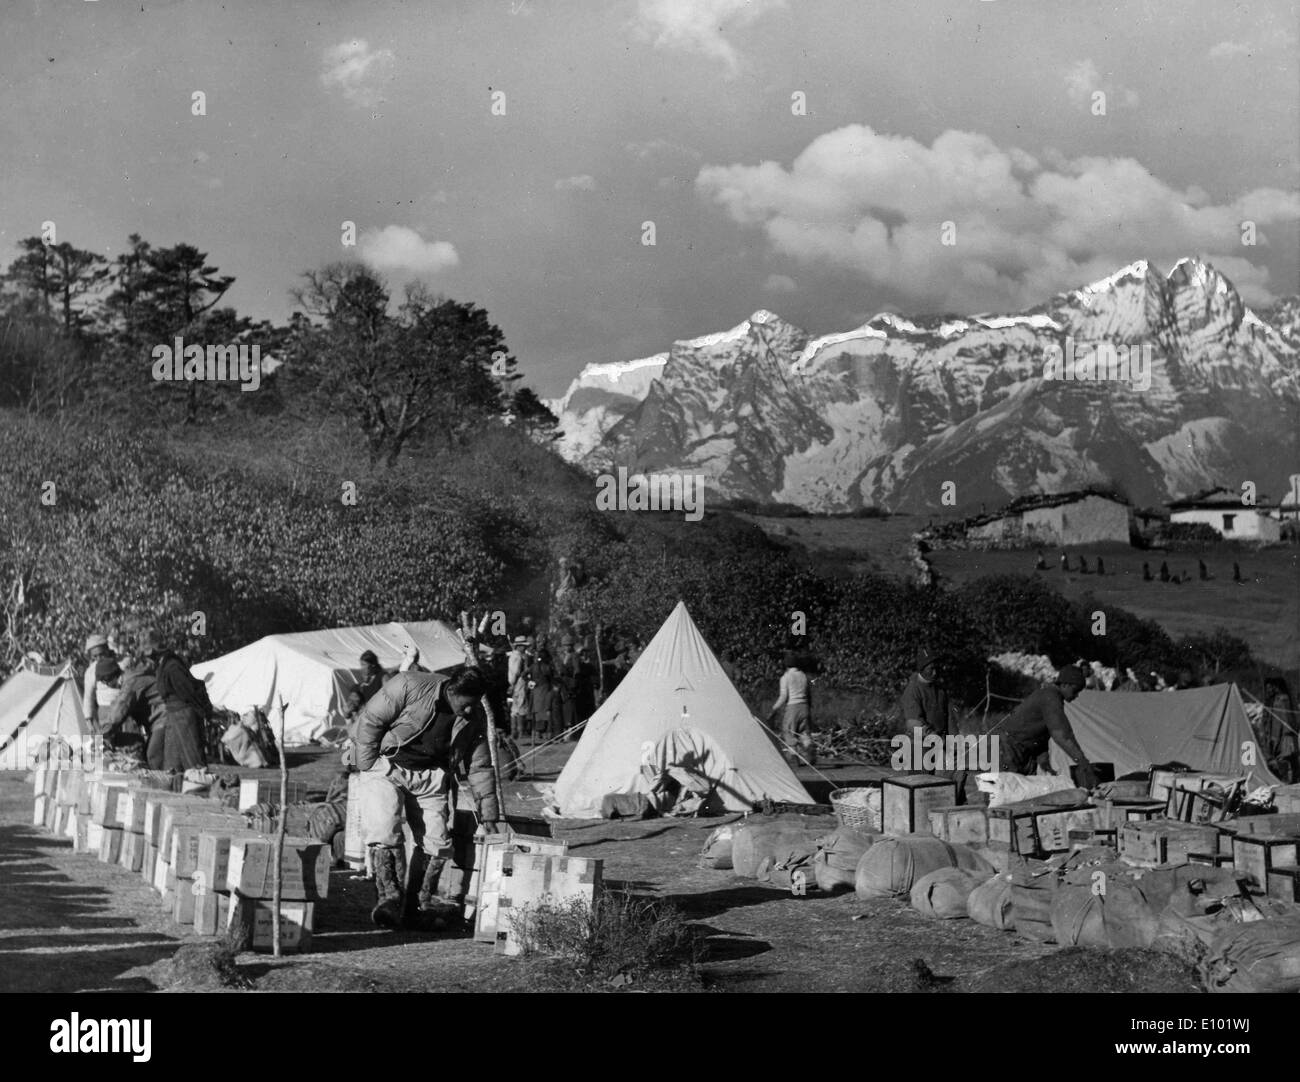 MOUNT EVEREST explorers camping - Stock Image